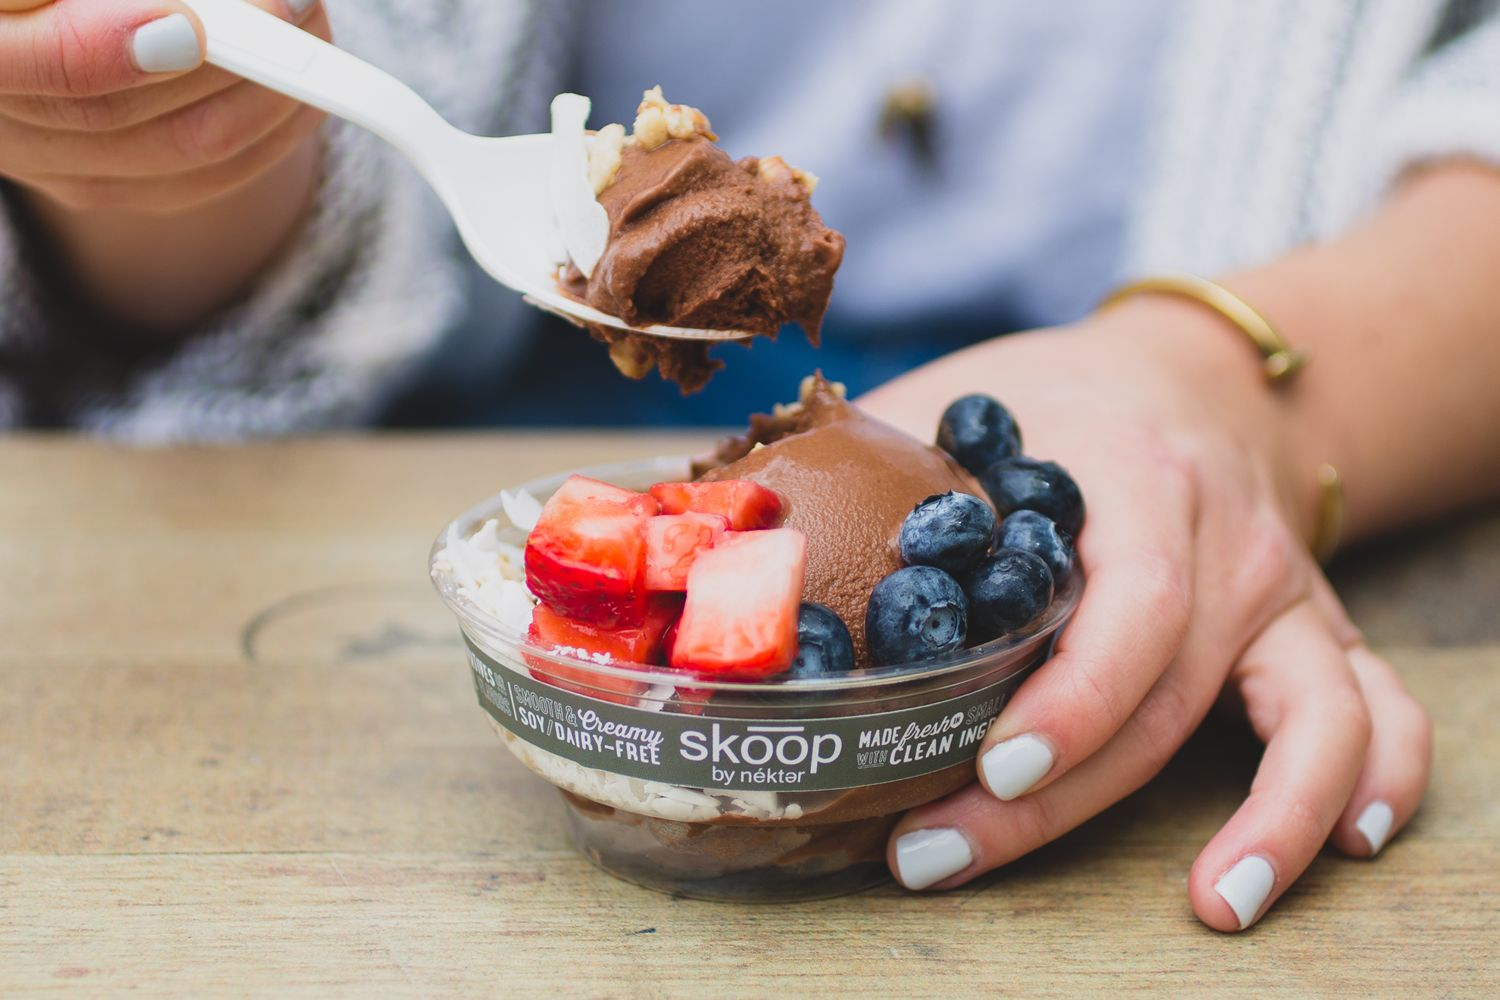 Summer in a Skoop: Nékter Juice Bar Debuts Simply Strawberry Skoop, New Seasonal Flavor of Its Healthy and Guilt-Free Frozen Treat